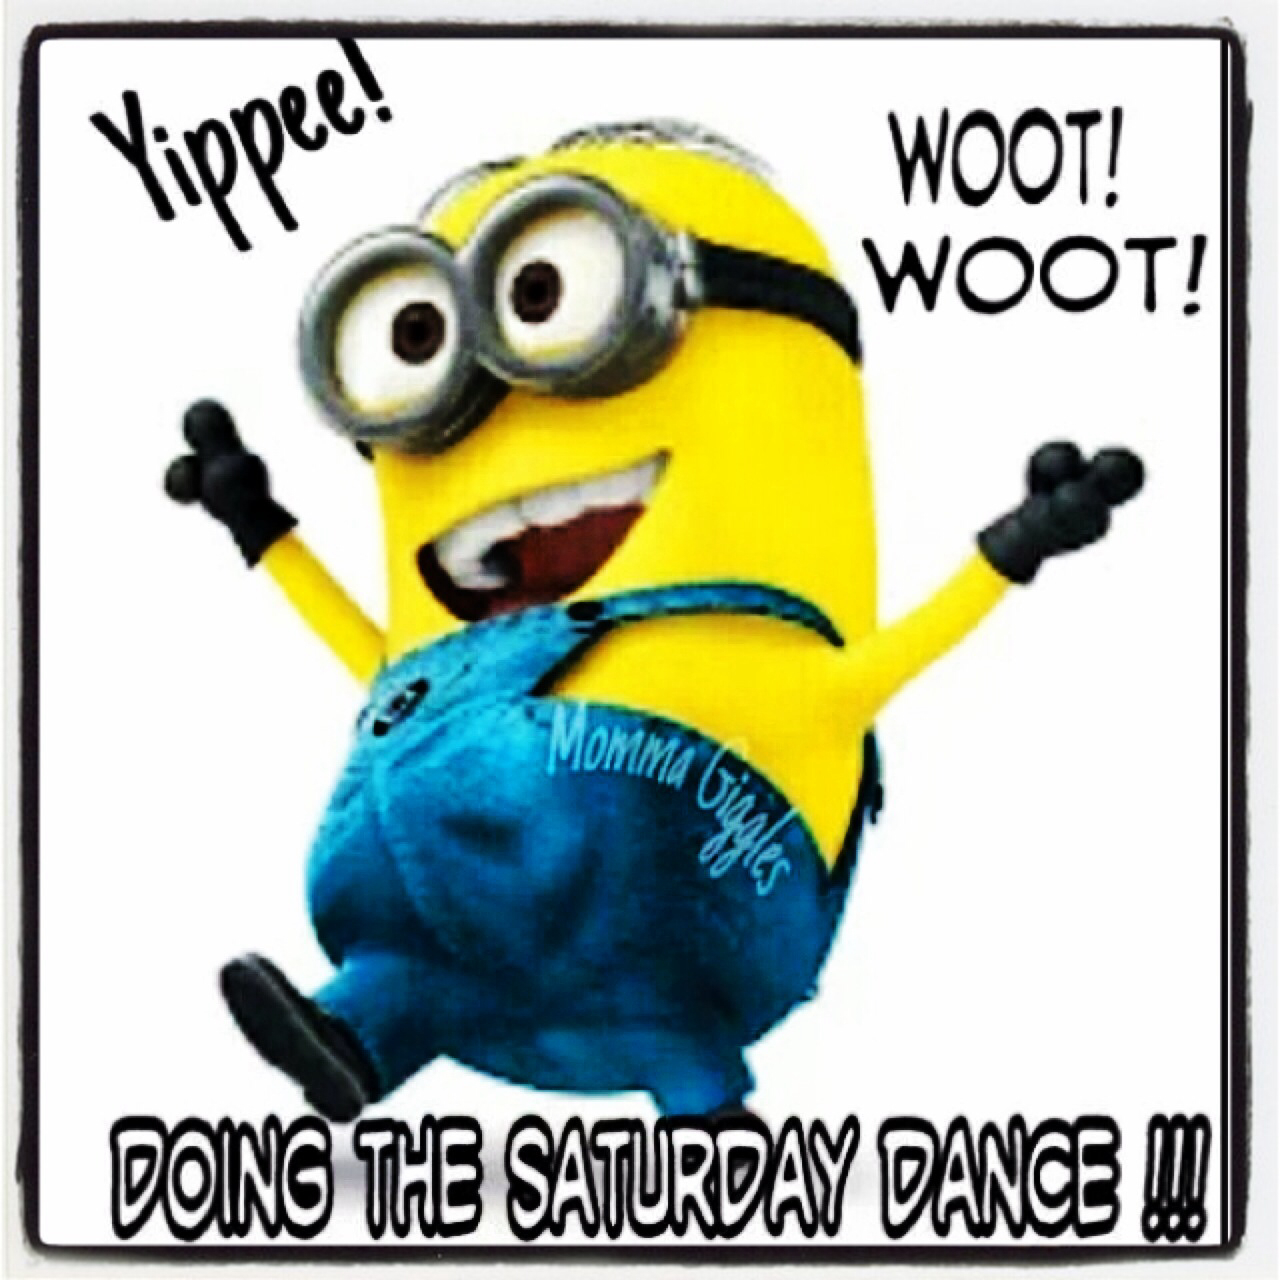 1280x1280 Yippee! Woot! Woot! Doing The Saturday Dance. Greetings